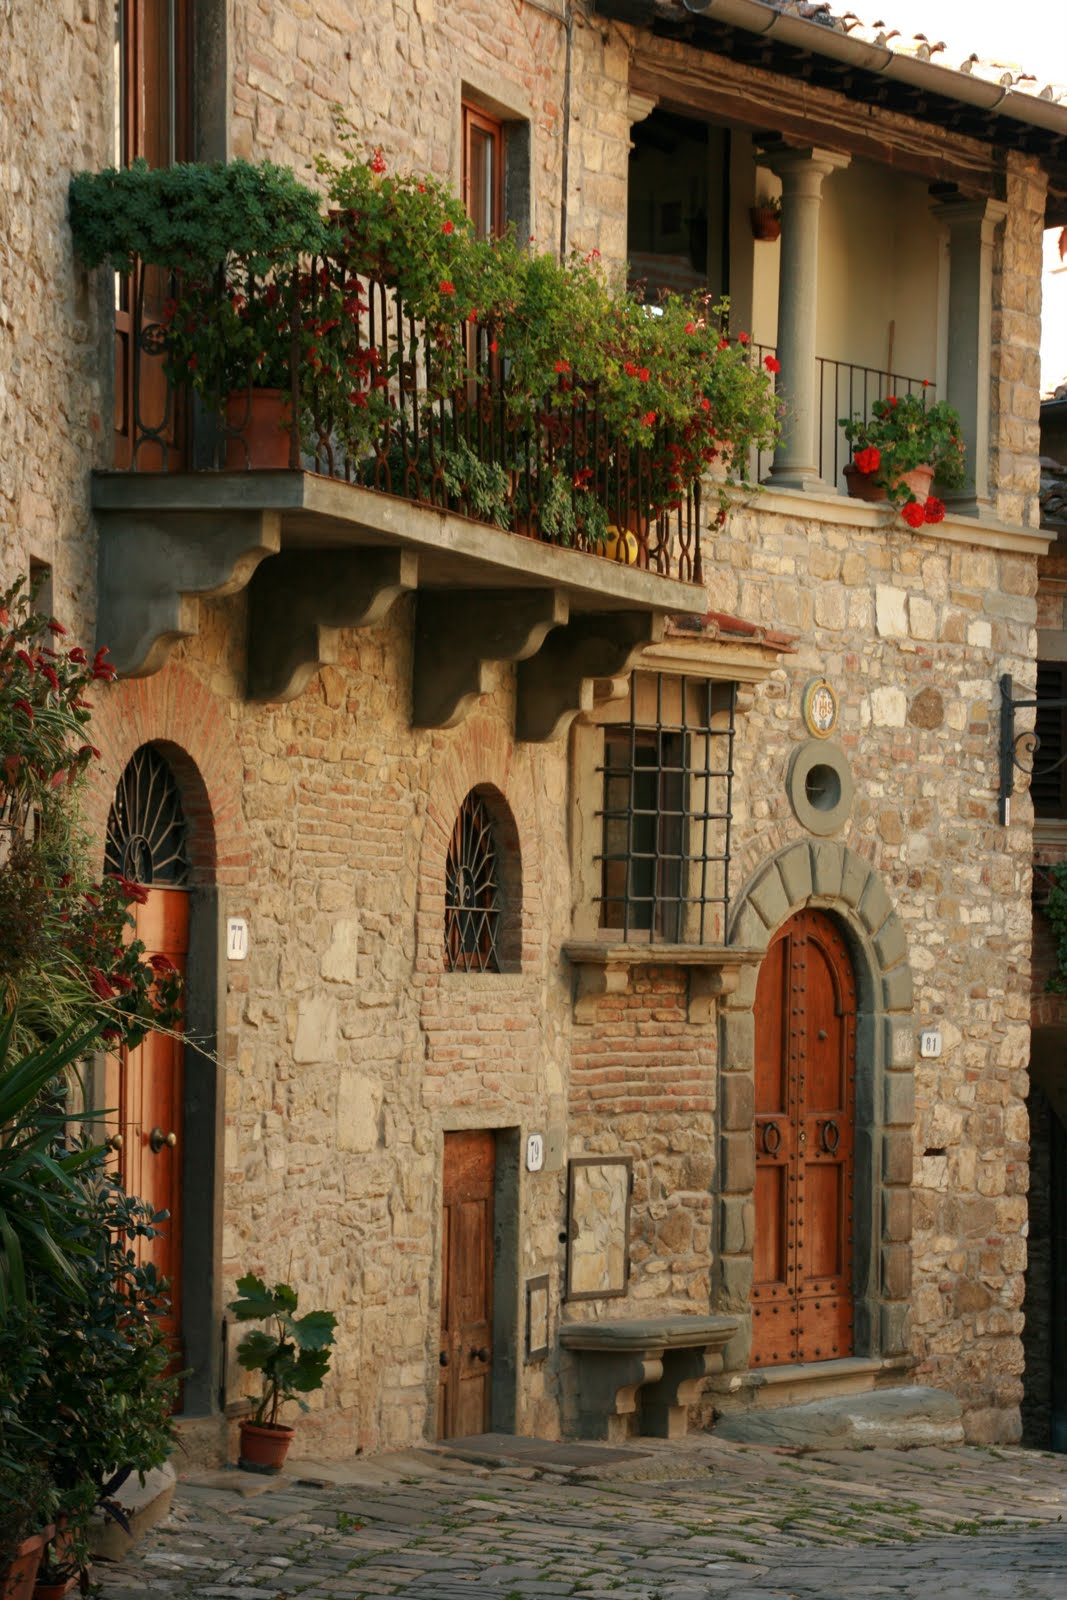 Vignette design tuesday inspiration window boxes for Tuscany houses